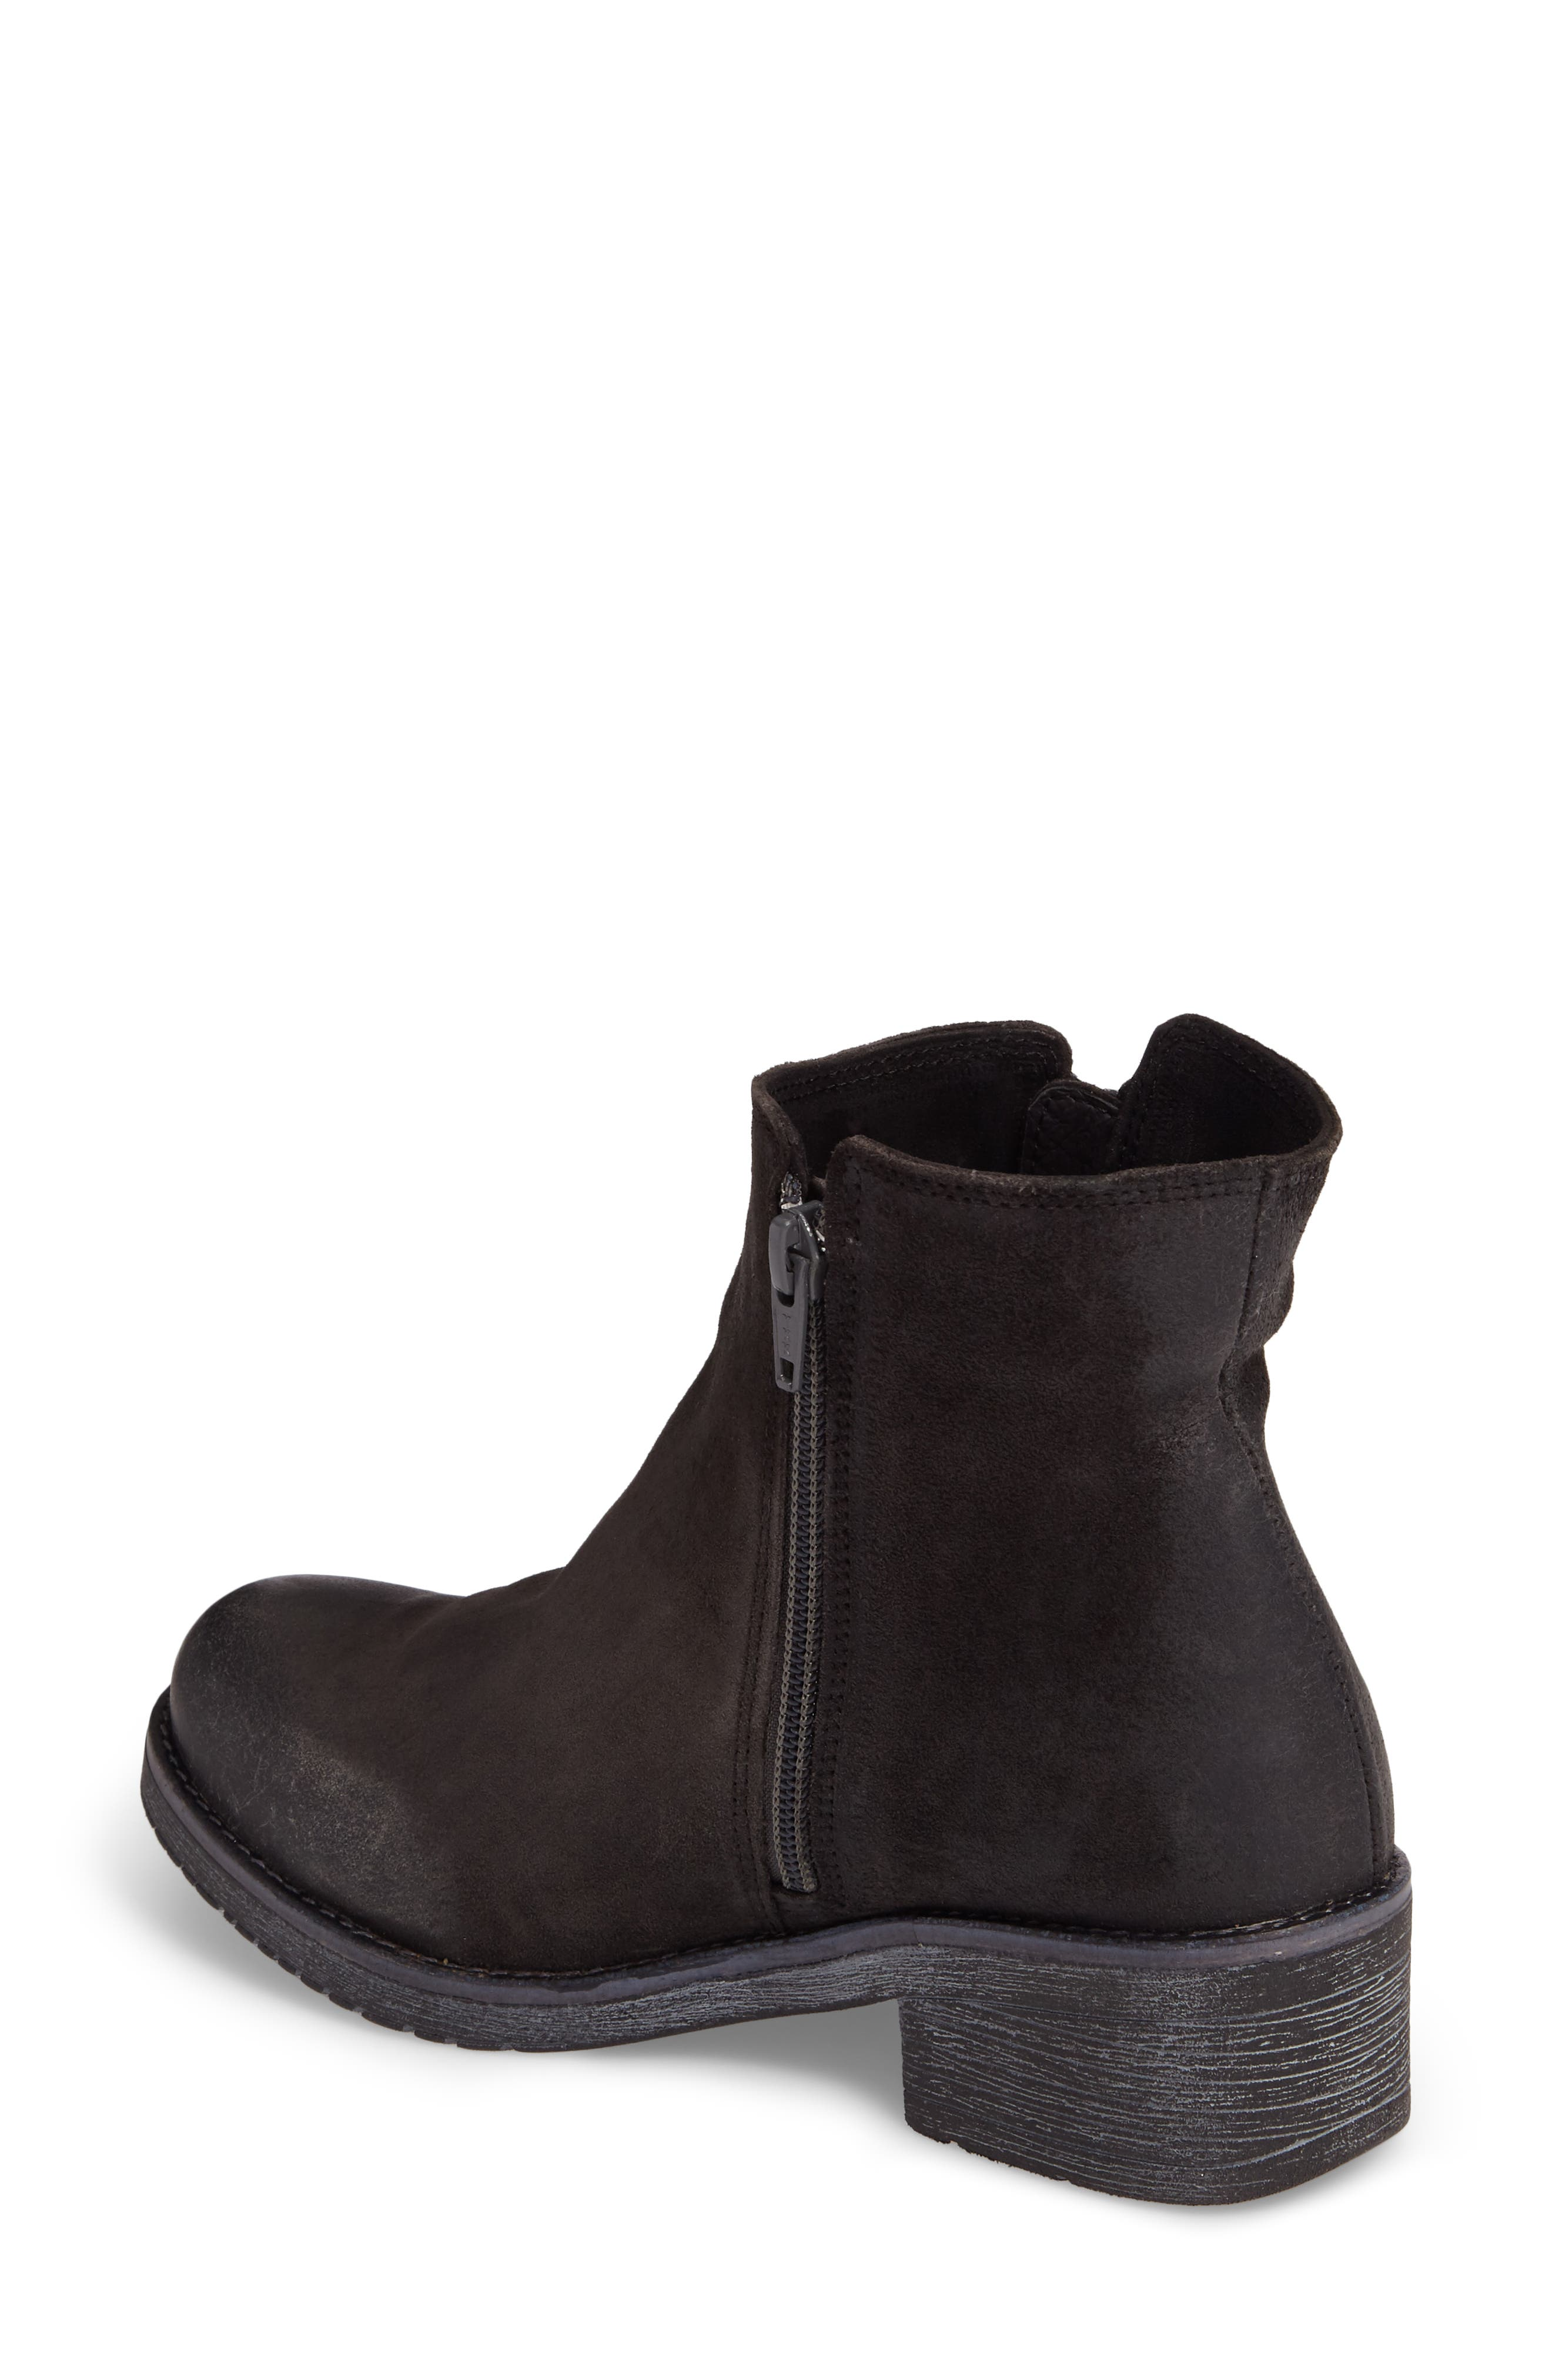 Wander Boot,                             Alternate thumbnail 2, color,                             OILY MIDNIGHT SUEDE